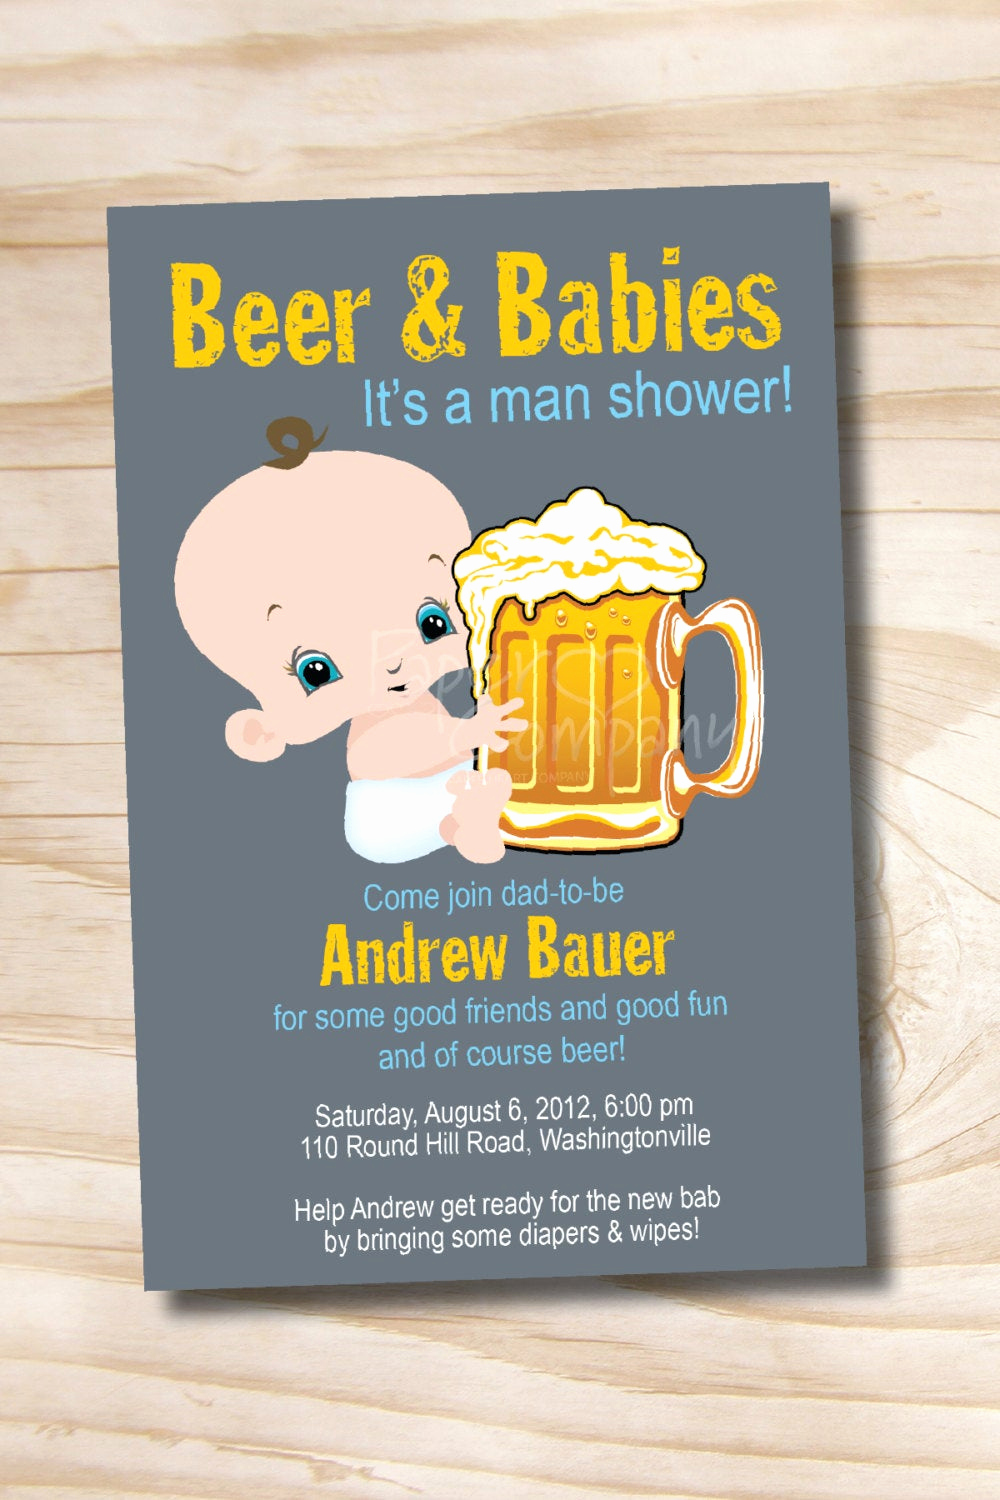 Template for Diaper Invitation Best Of Man Shower Beer and Babies Diaper Party Invitation Printable